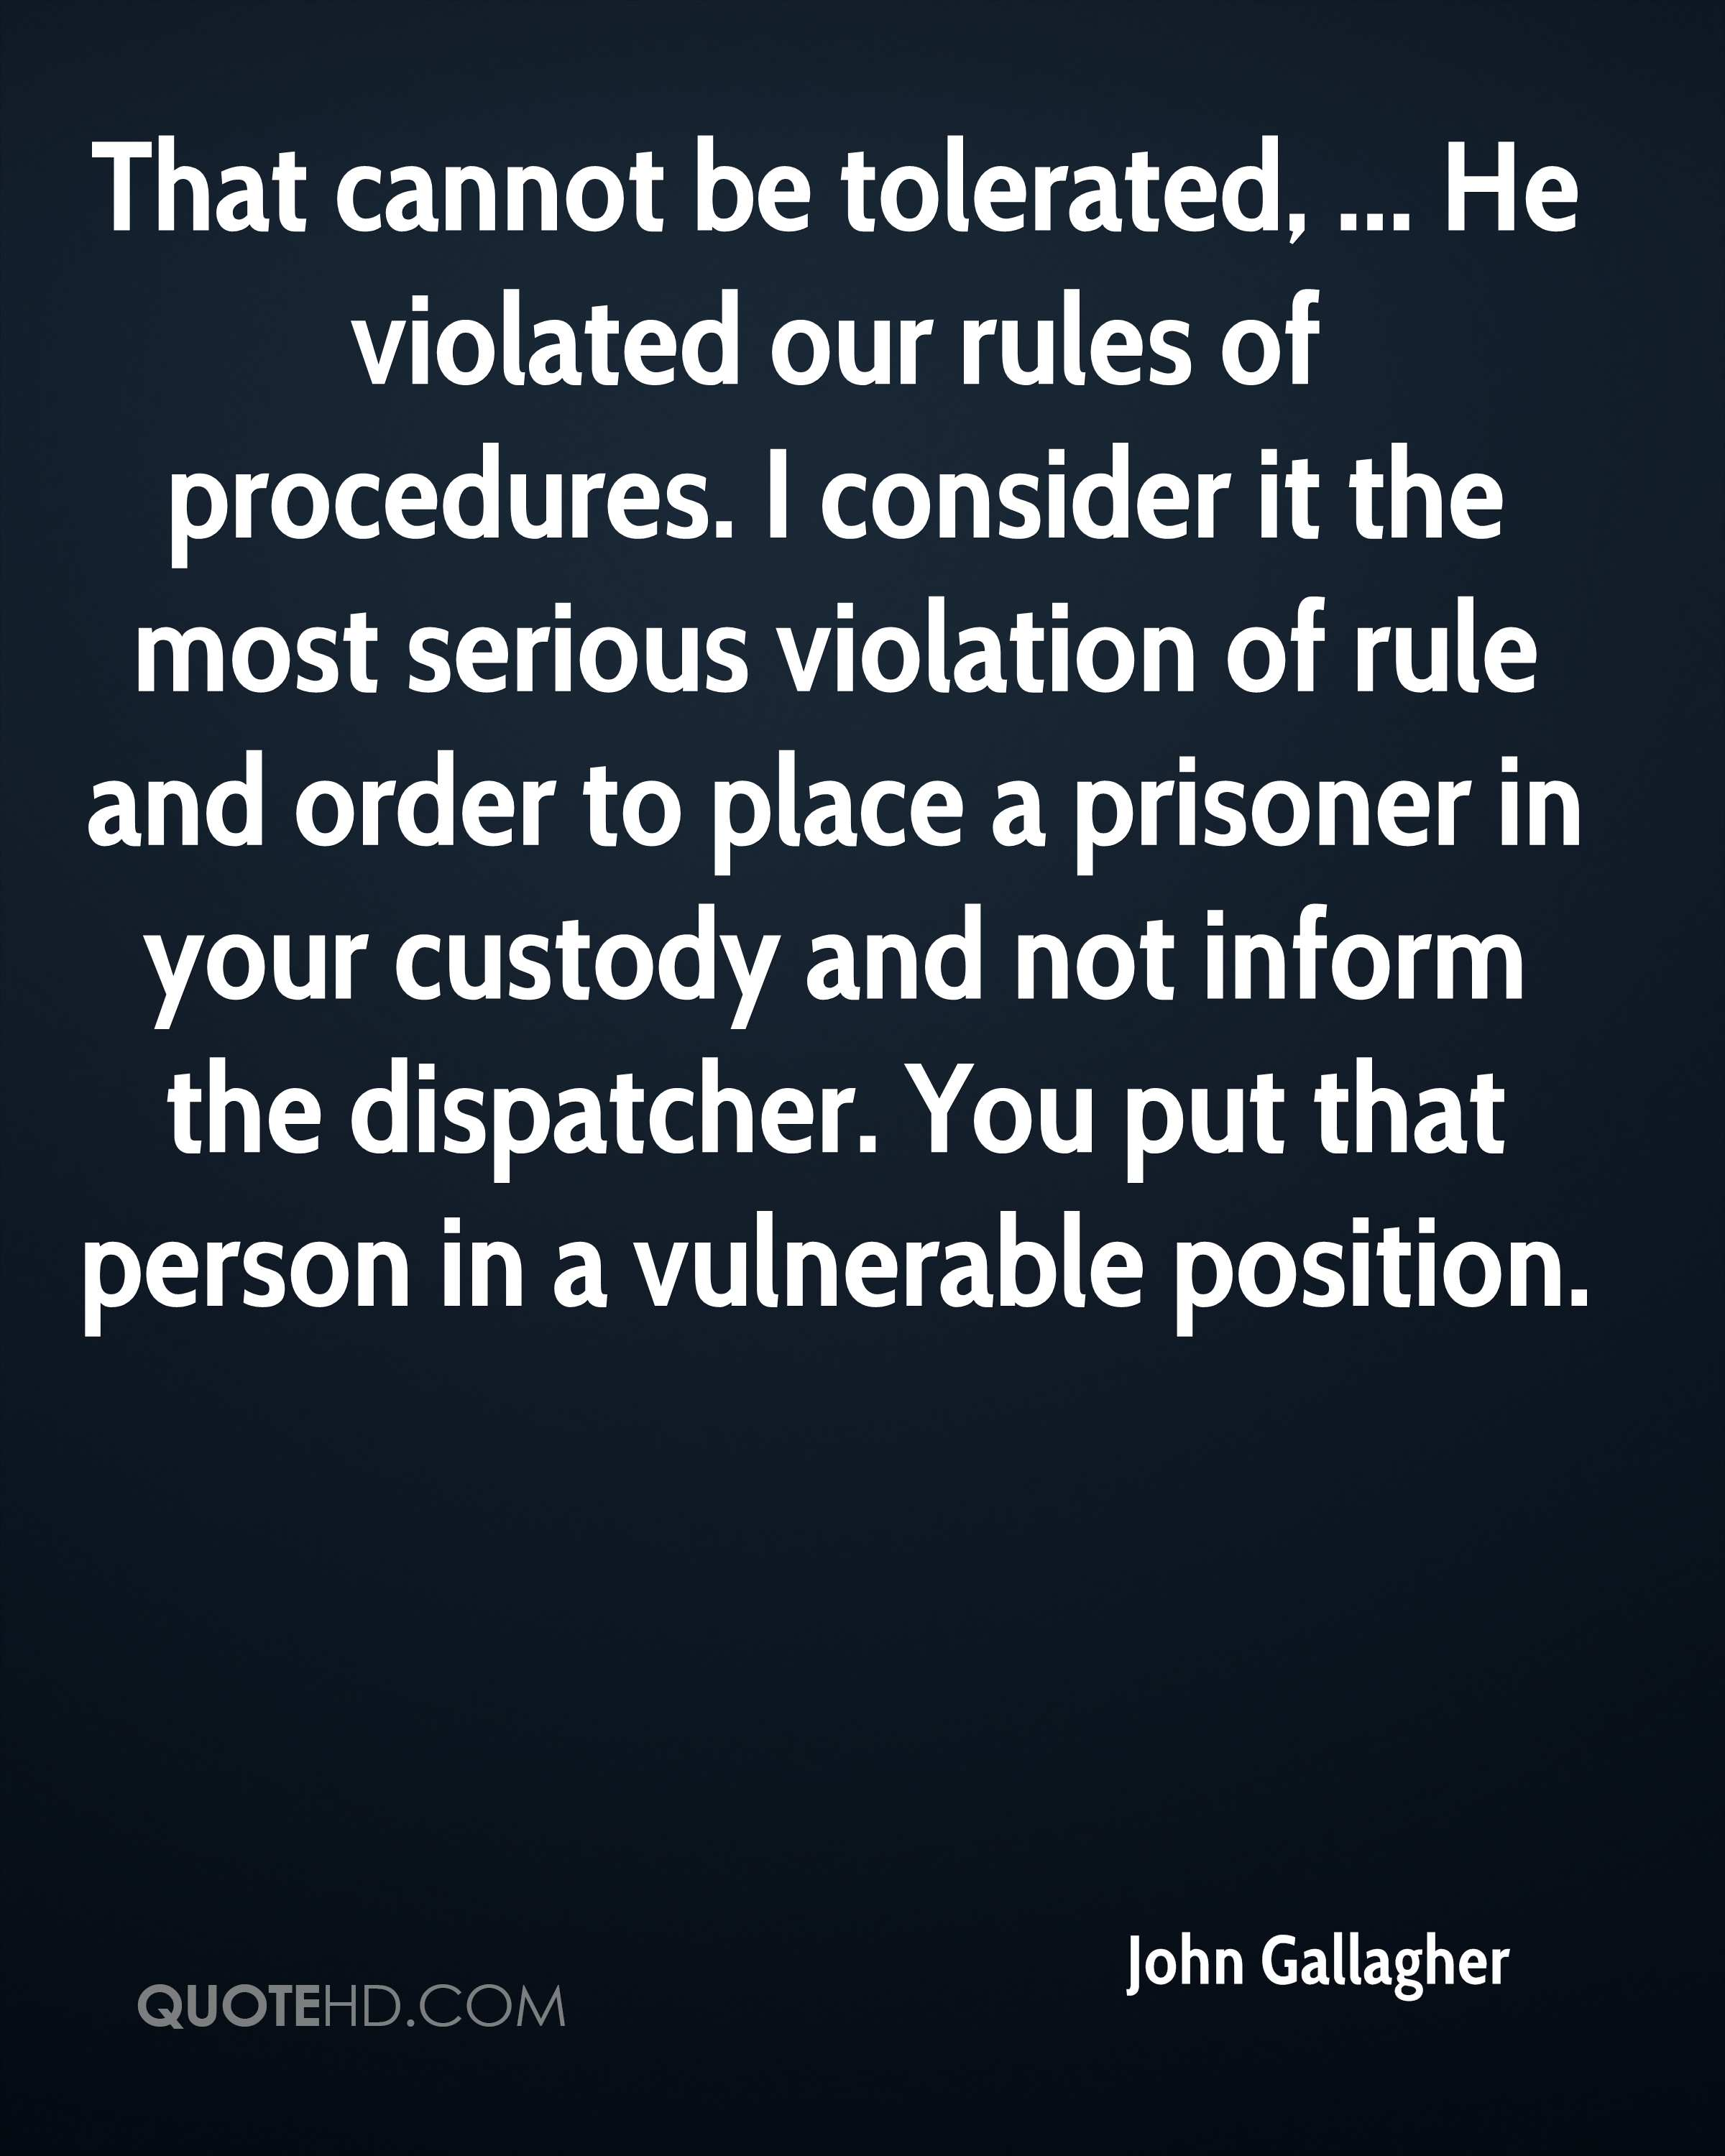 That cannot be tolerated, ... He violated our rules of procedures. I consider it the most serious violation of rule and order to place a prisoner in your custody and not inform the dispatcher. You put that person in a vulnerable position.